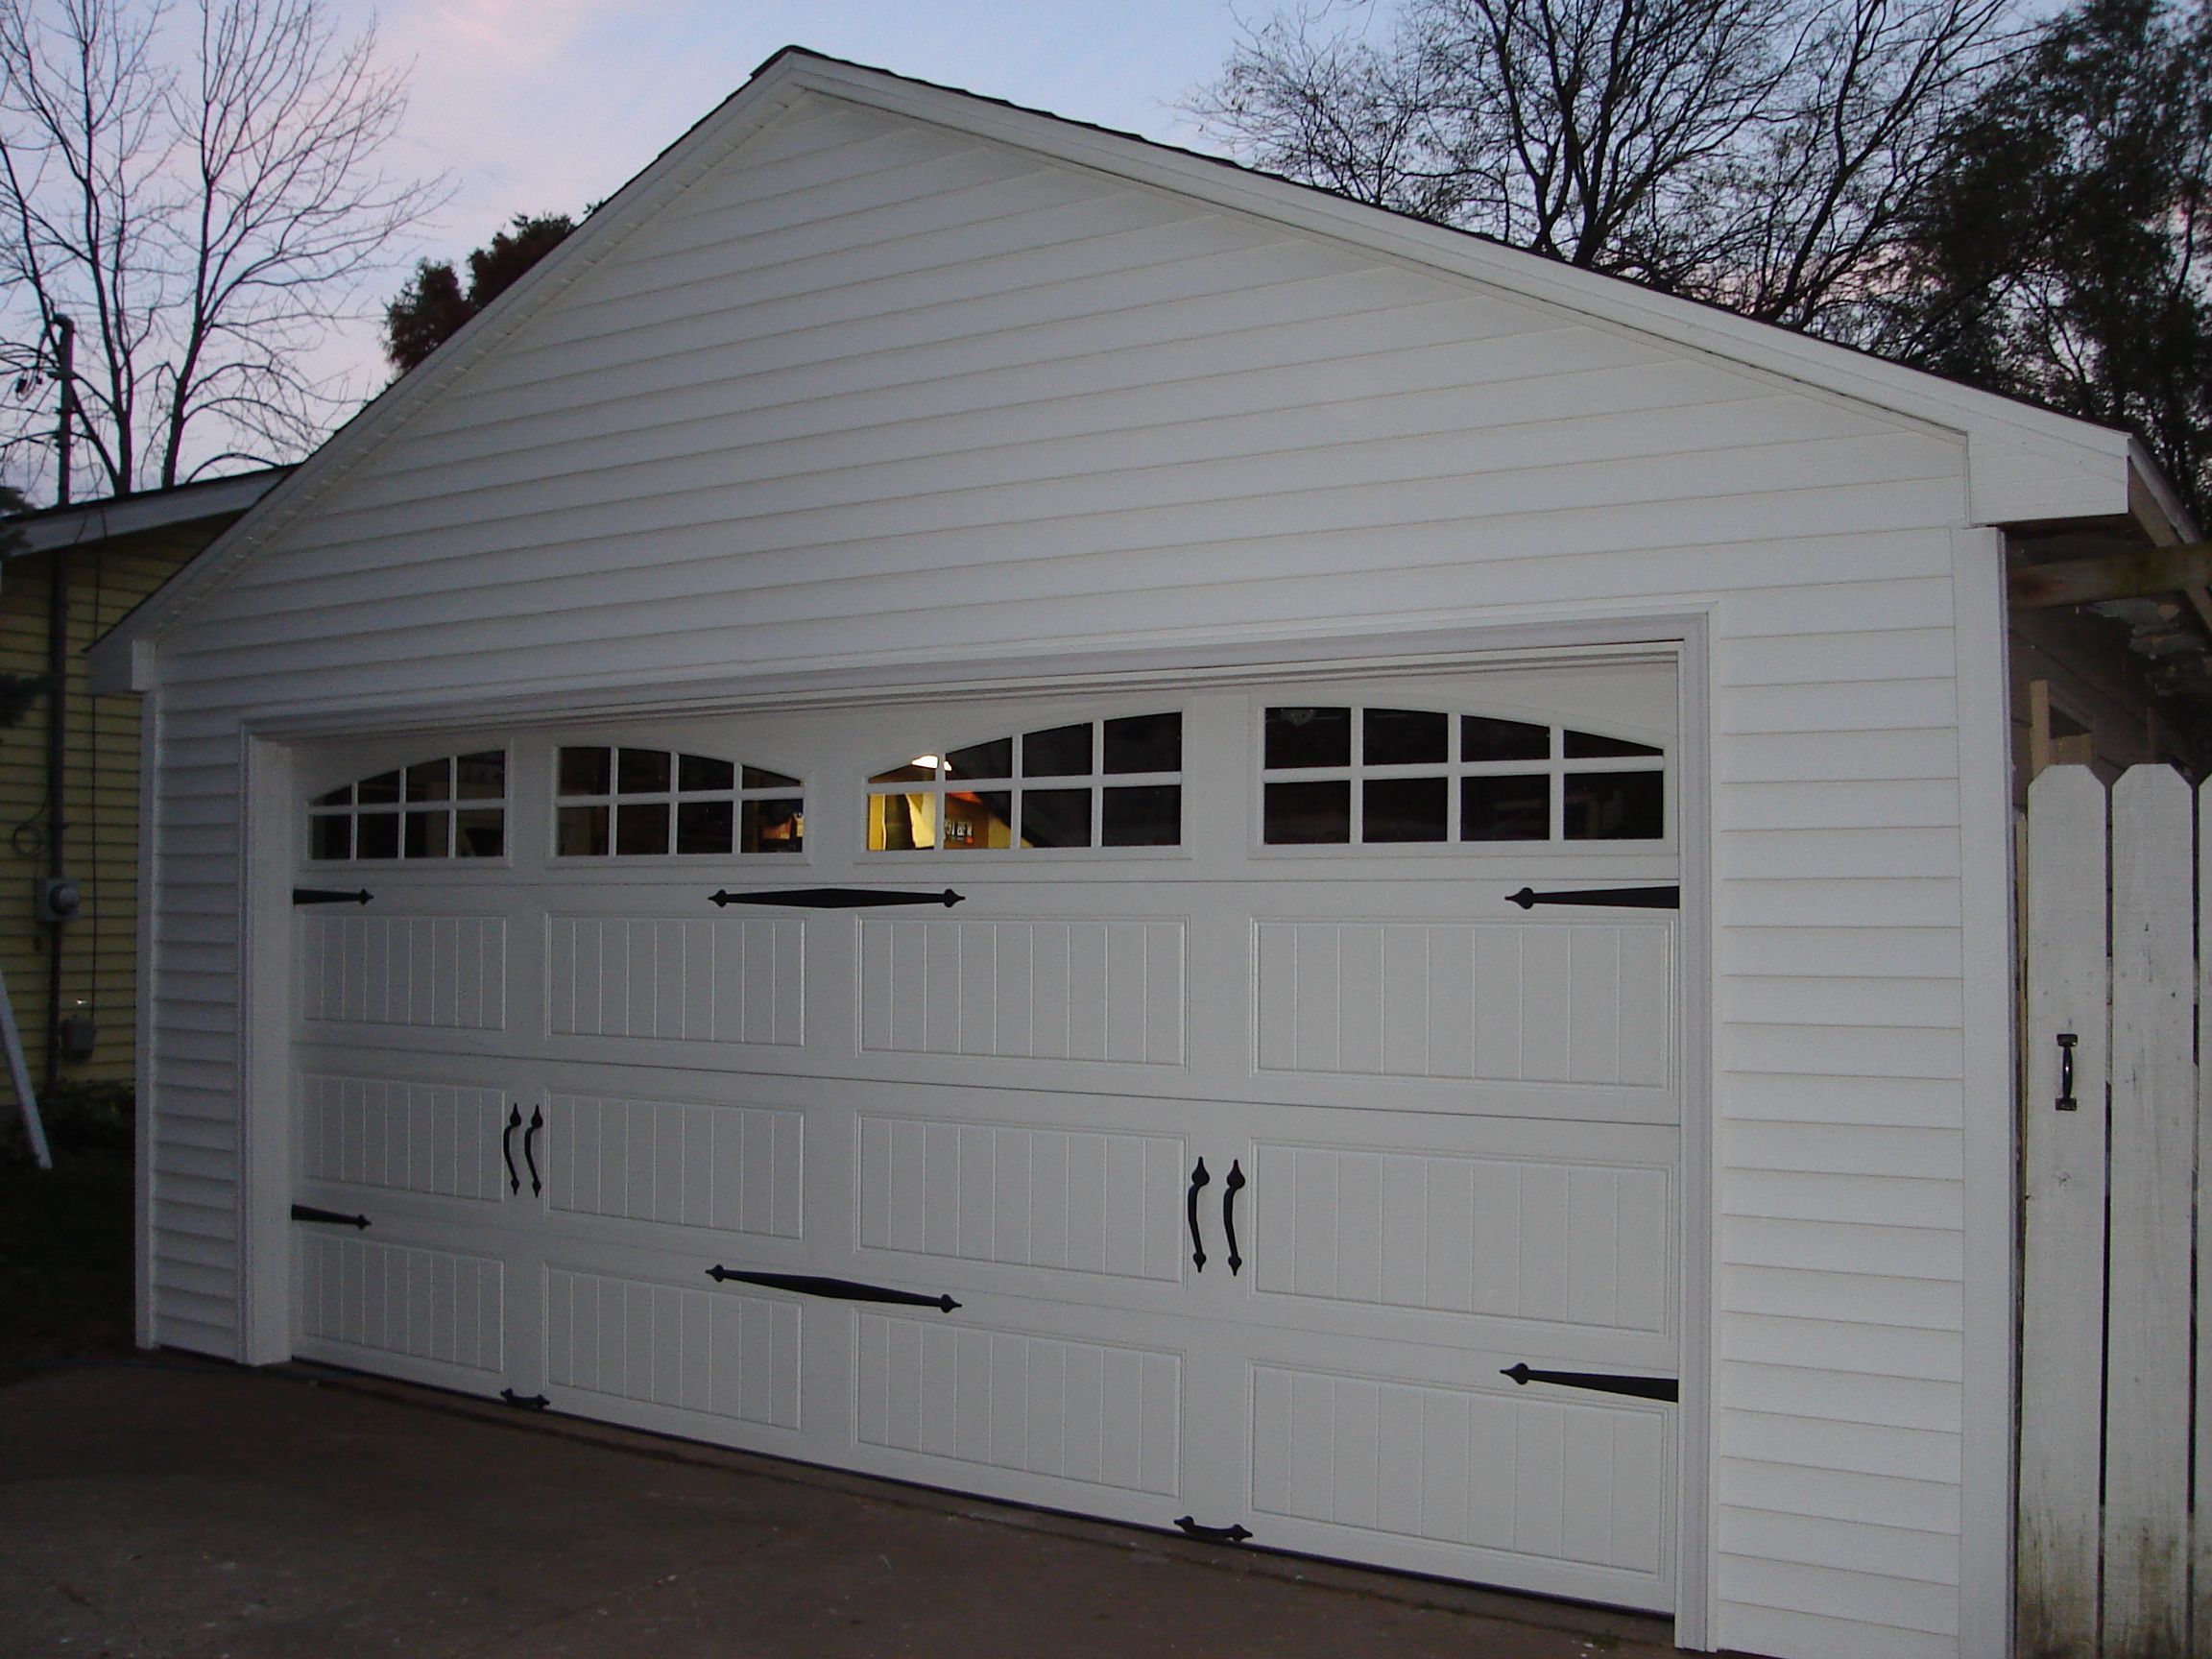 Pin By Meredith Ogburn On Garage Doors Garage Door Styles Garage Door Design Garage Doors